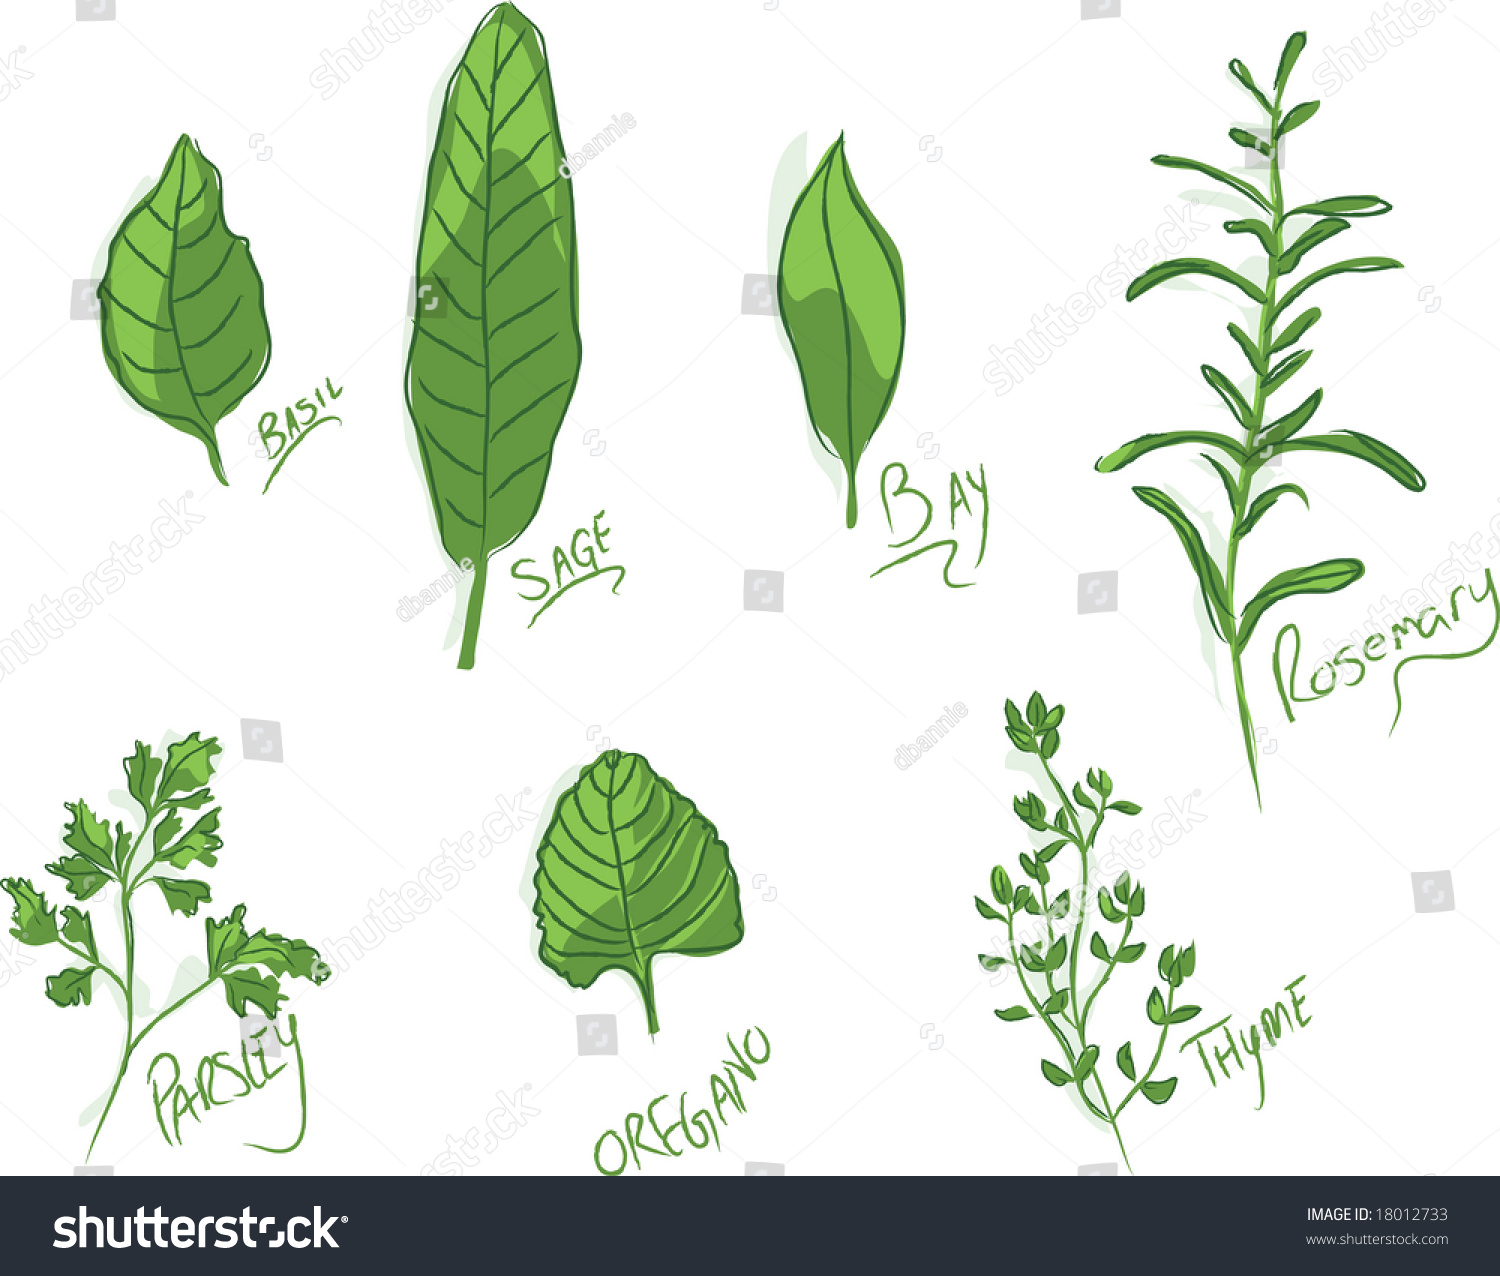 Natural Images Vector